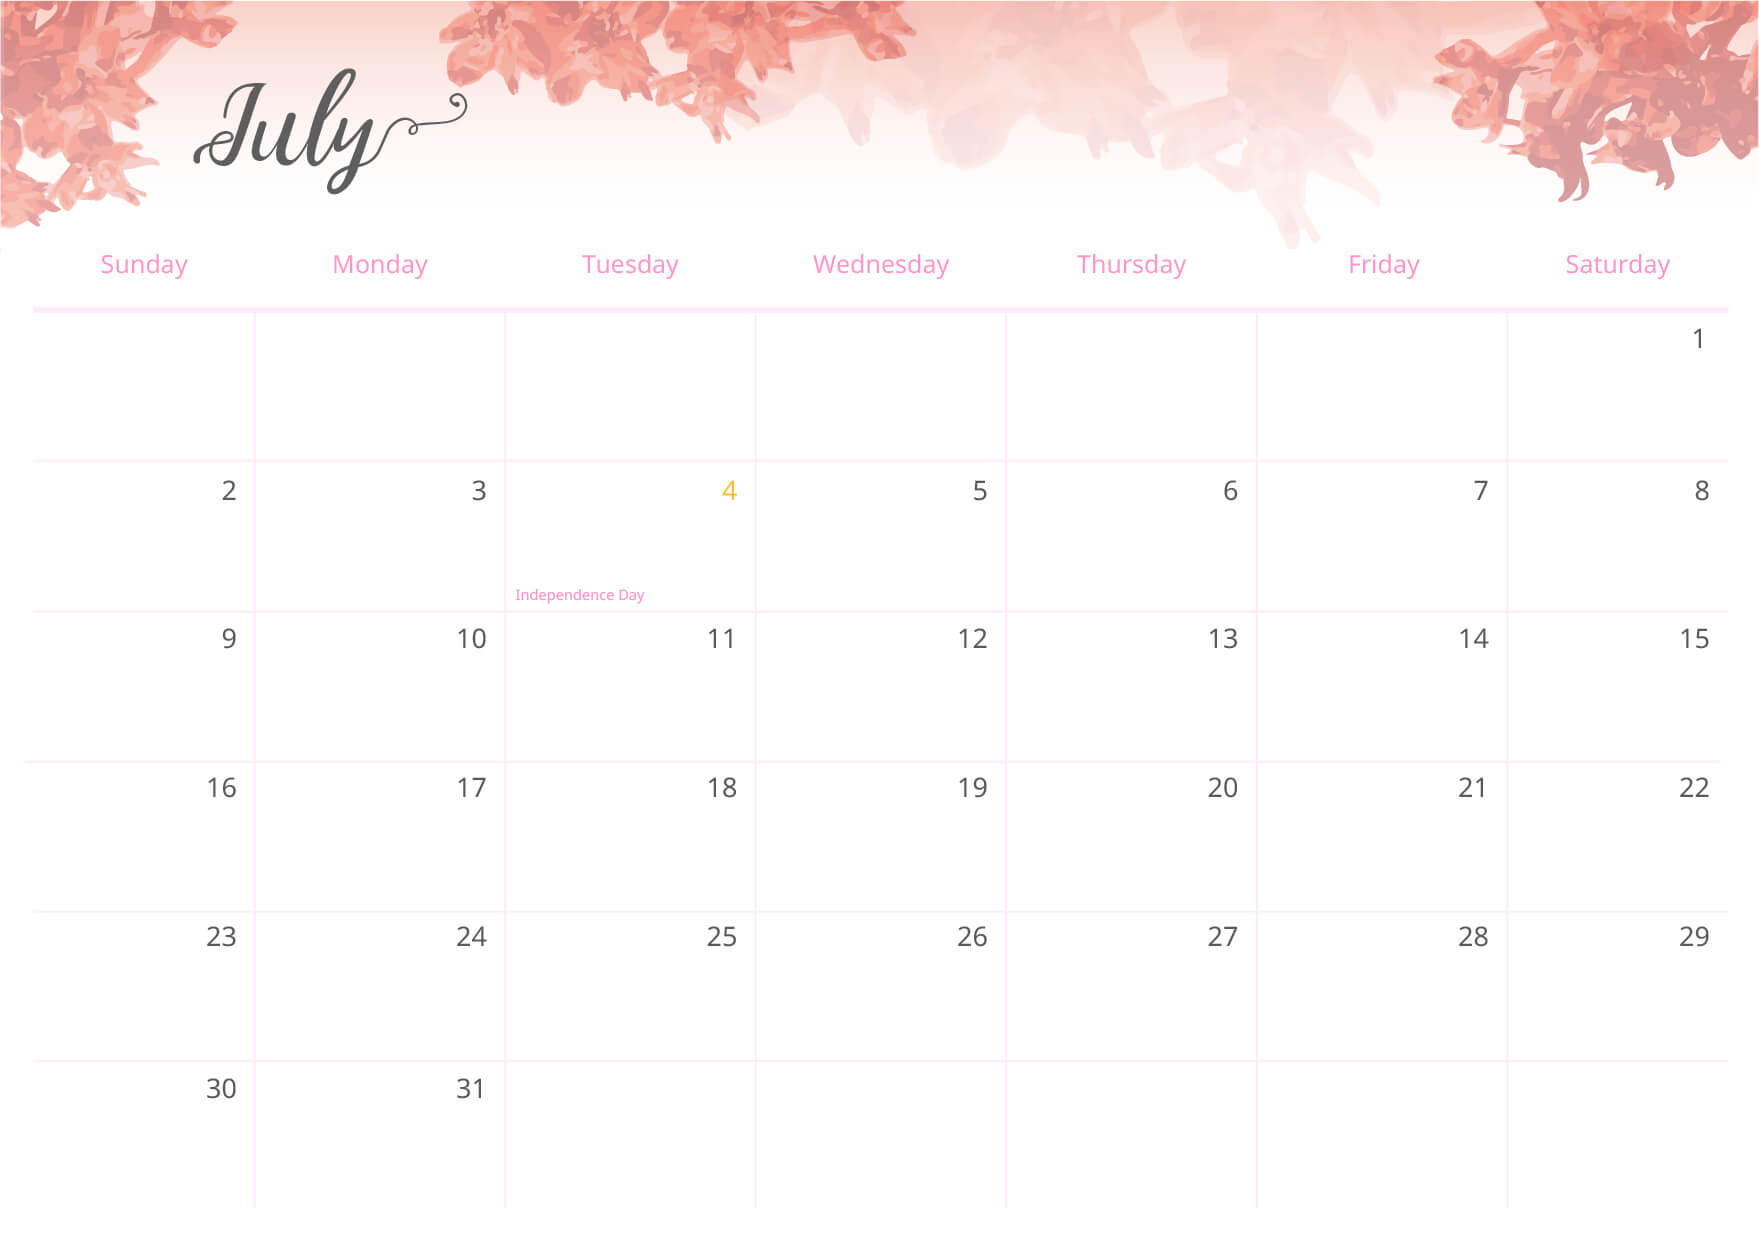 With a beautiful floral design, the calendar fits any decoration style.